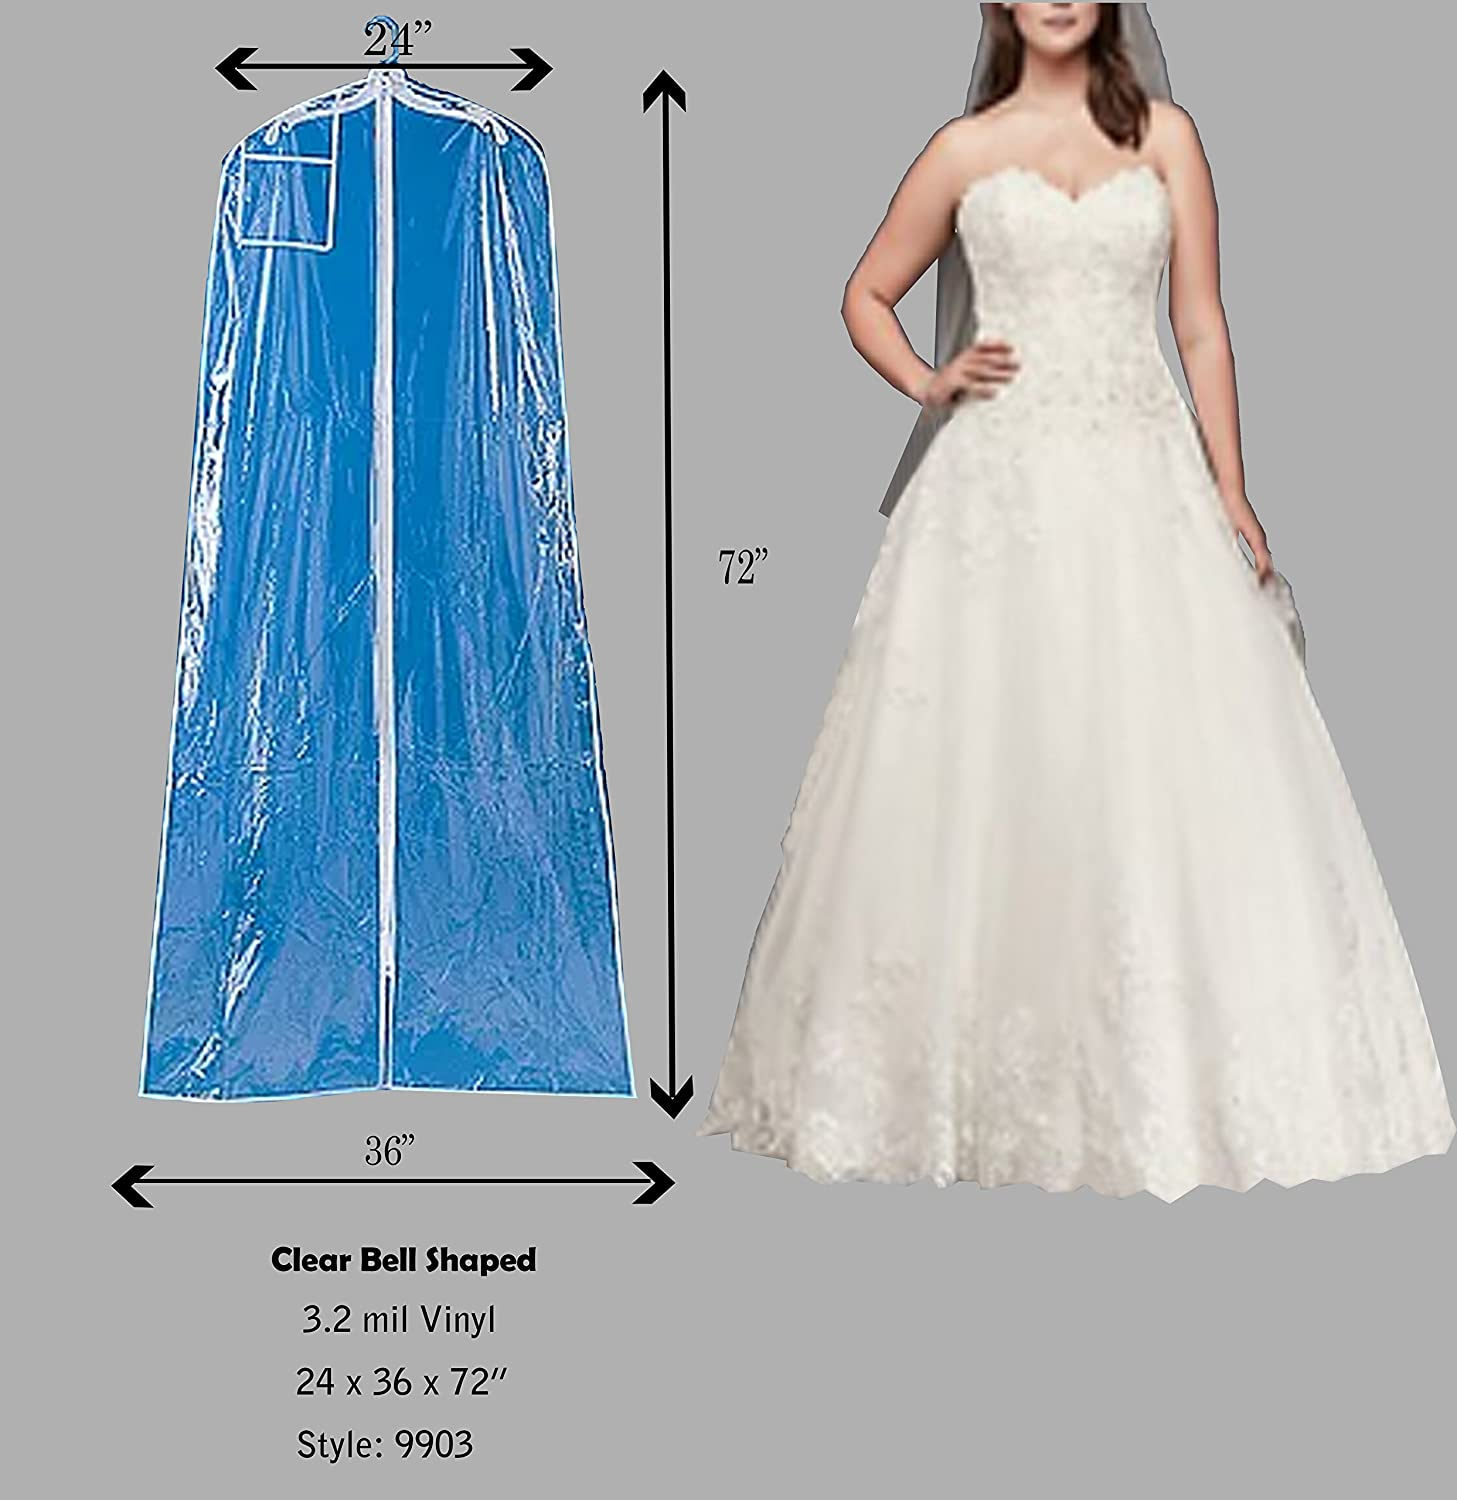 Luxury Wedding Gown Bag Frieze - All Wedding Dresses ...